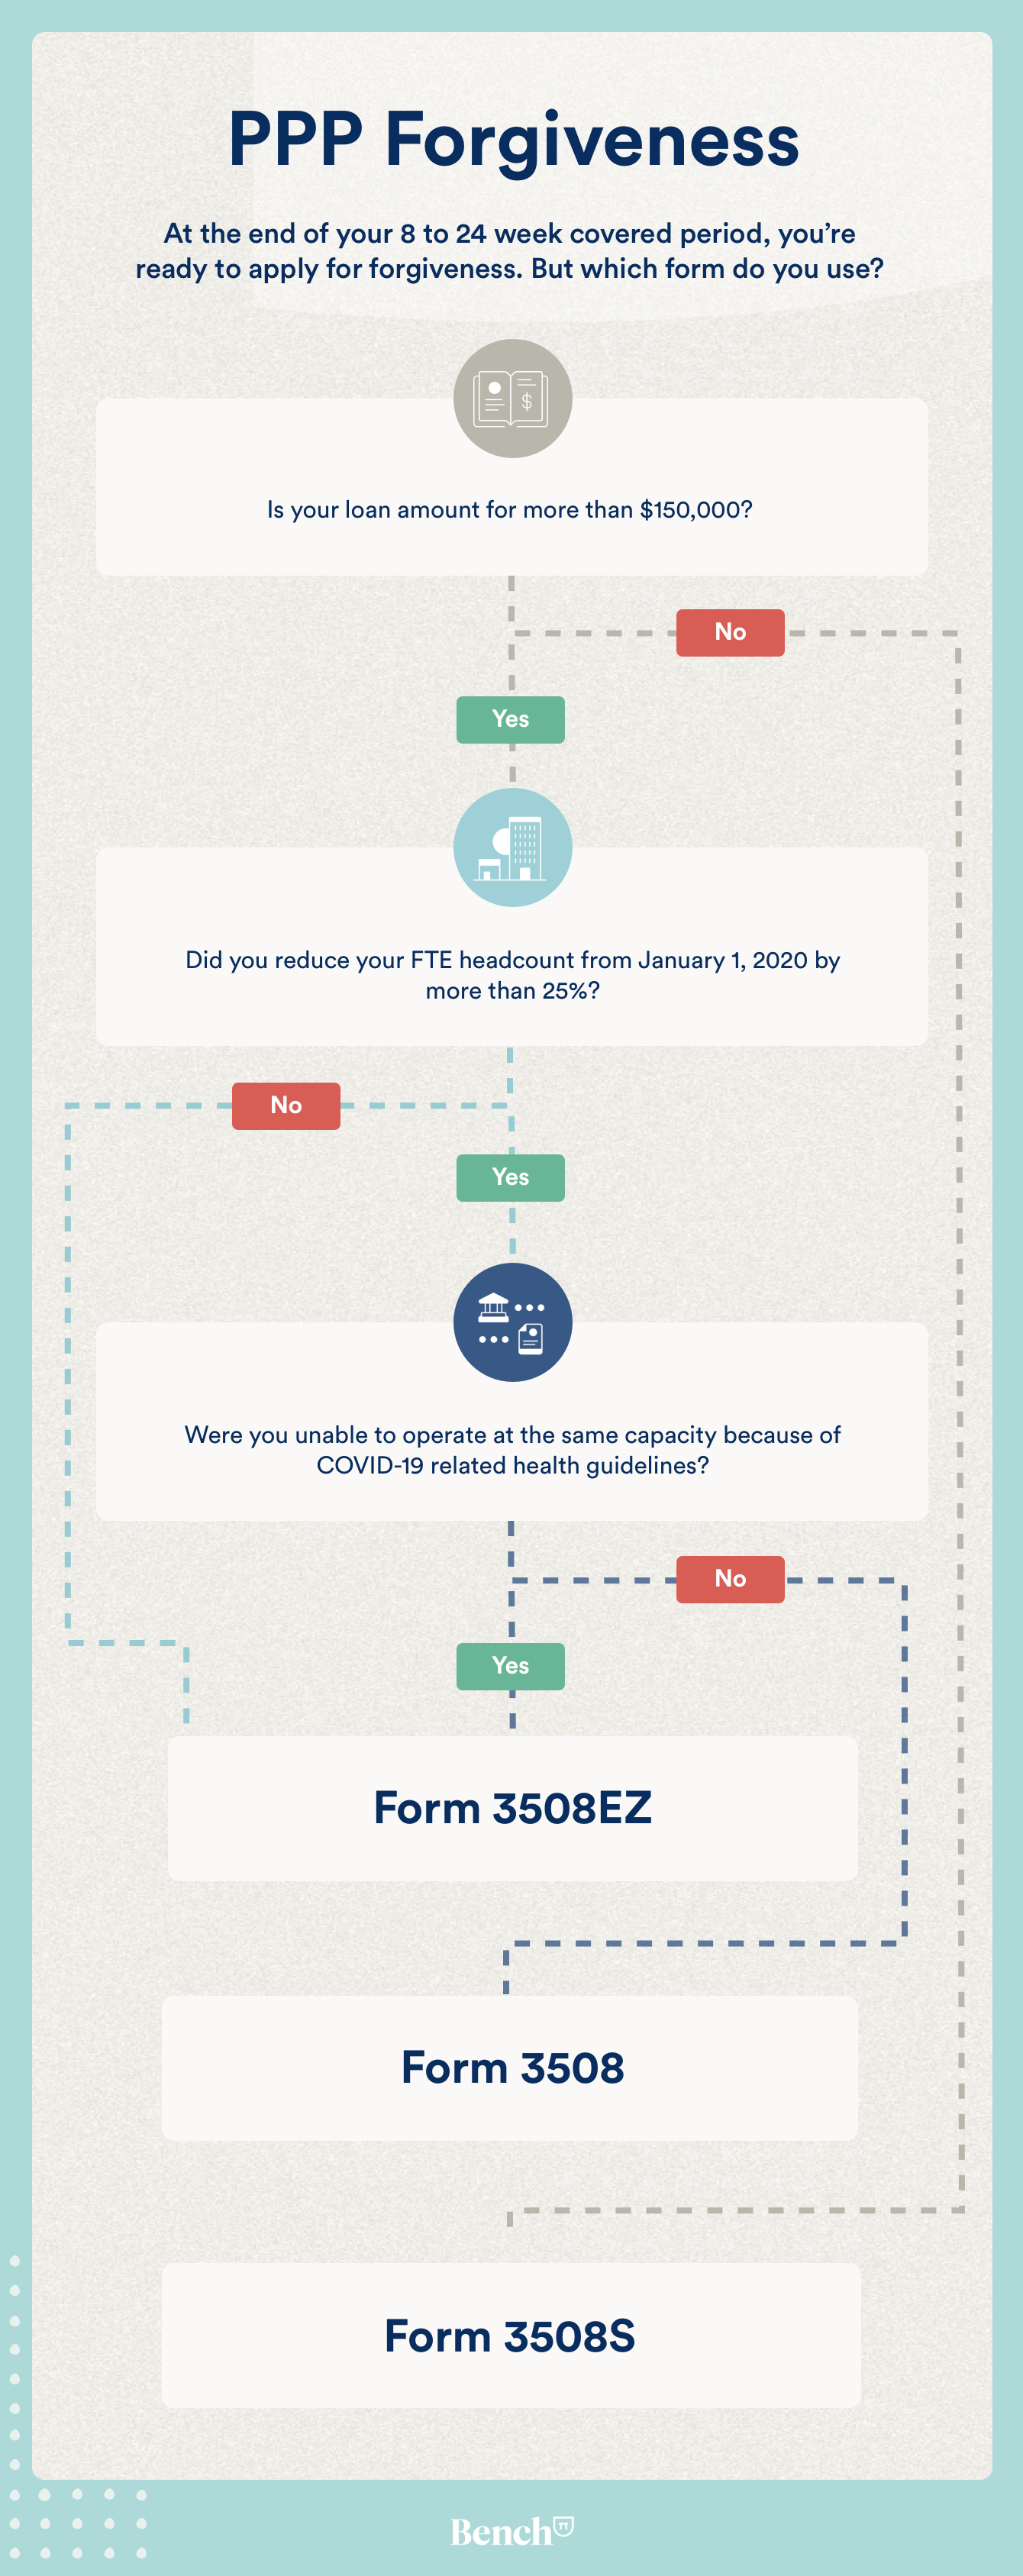 Which PPP forgiveness application do I use? (vertical flowchart)